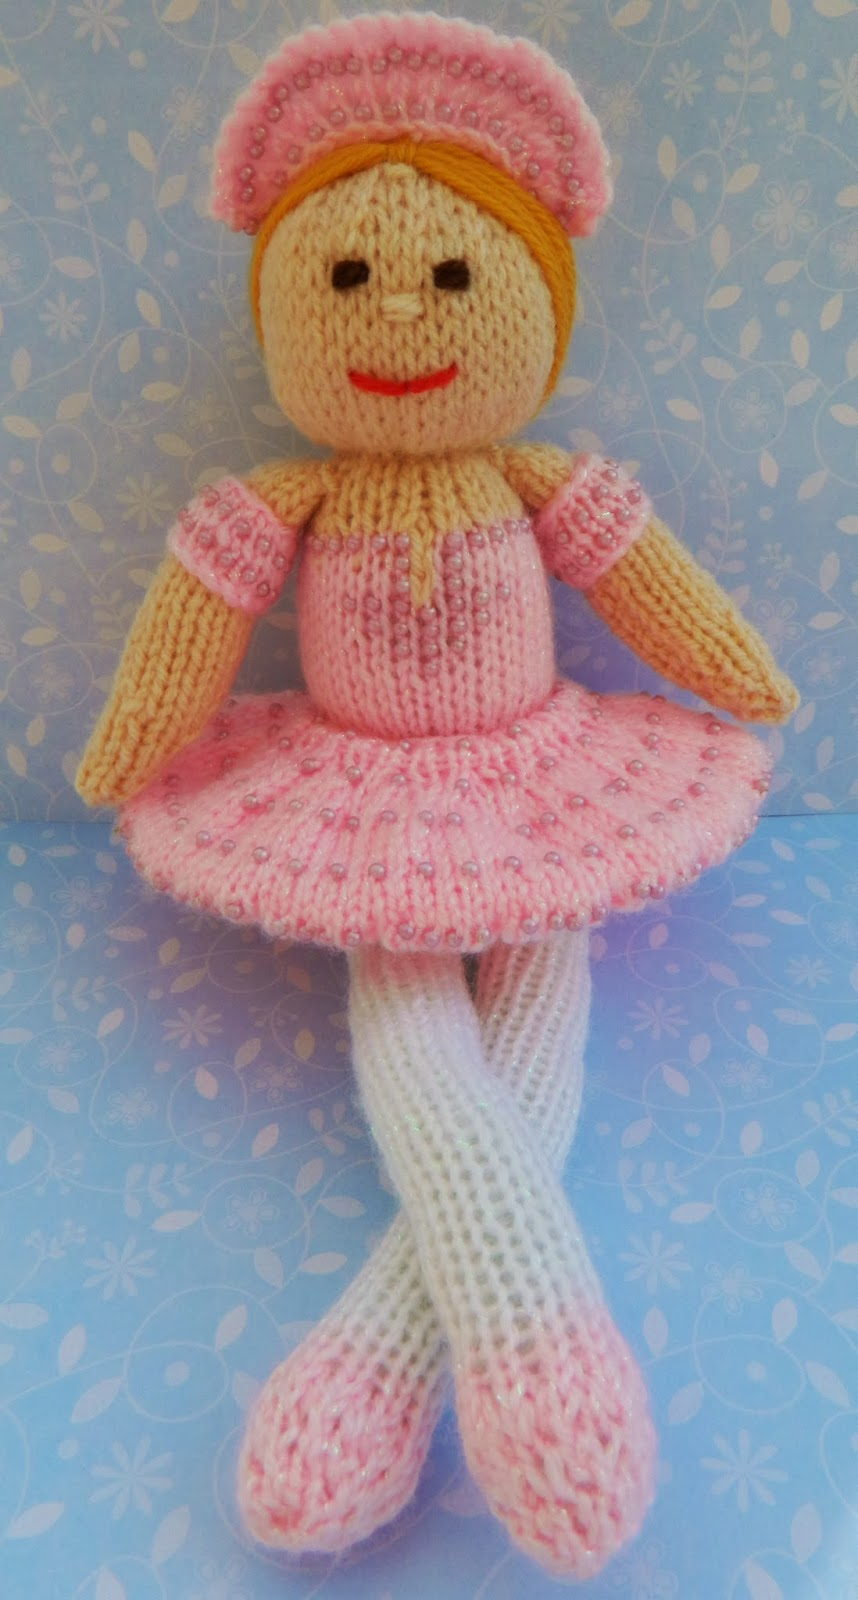 Knitting Pattern Ballerina Doll : Edith Grace Designs - Original Doll & Toy Knitting ...